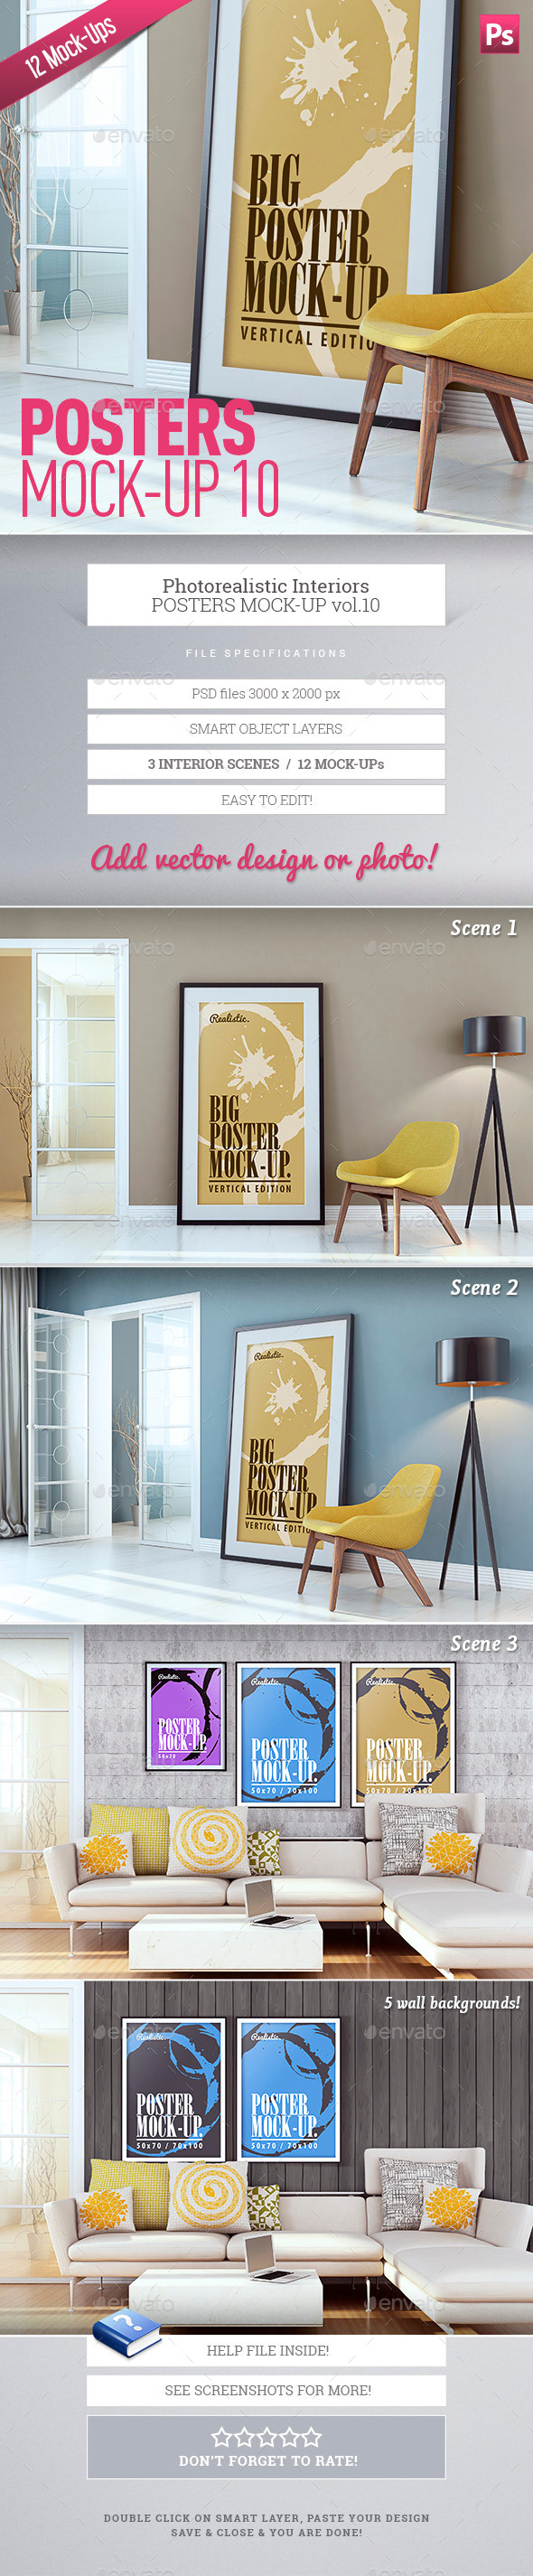 Posters Mock-Up vol.10 - Posters Print